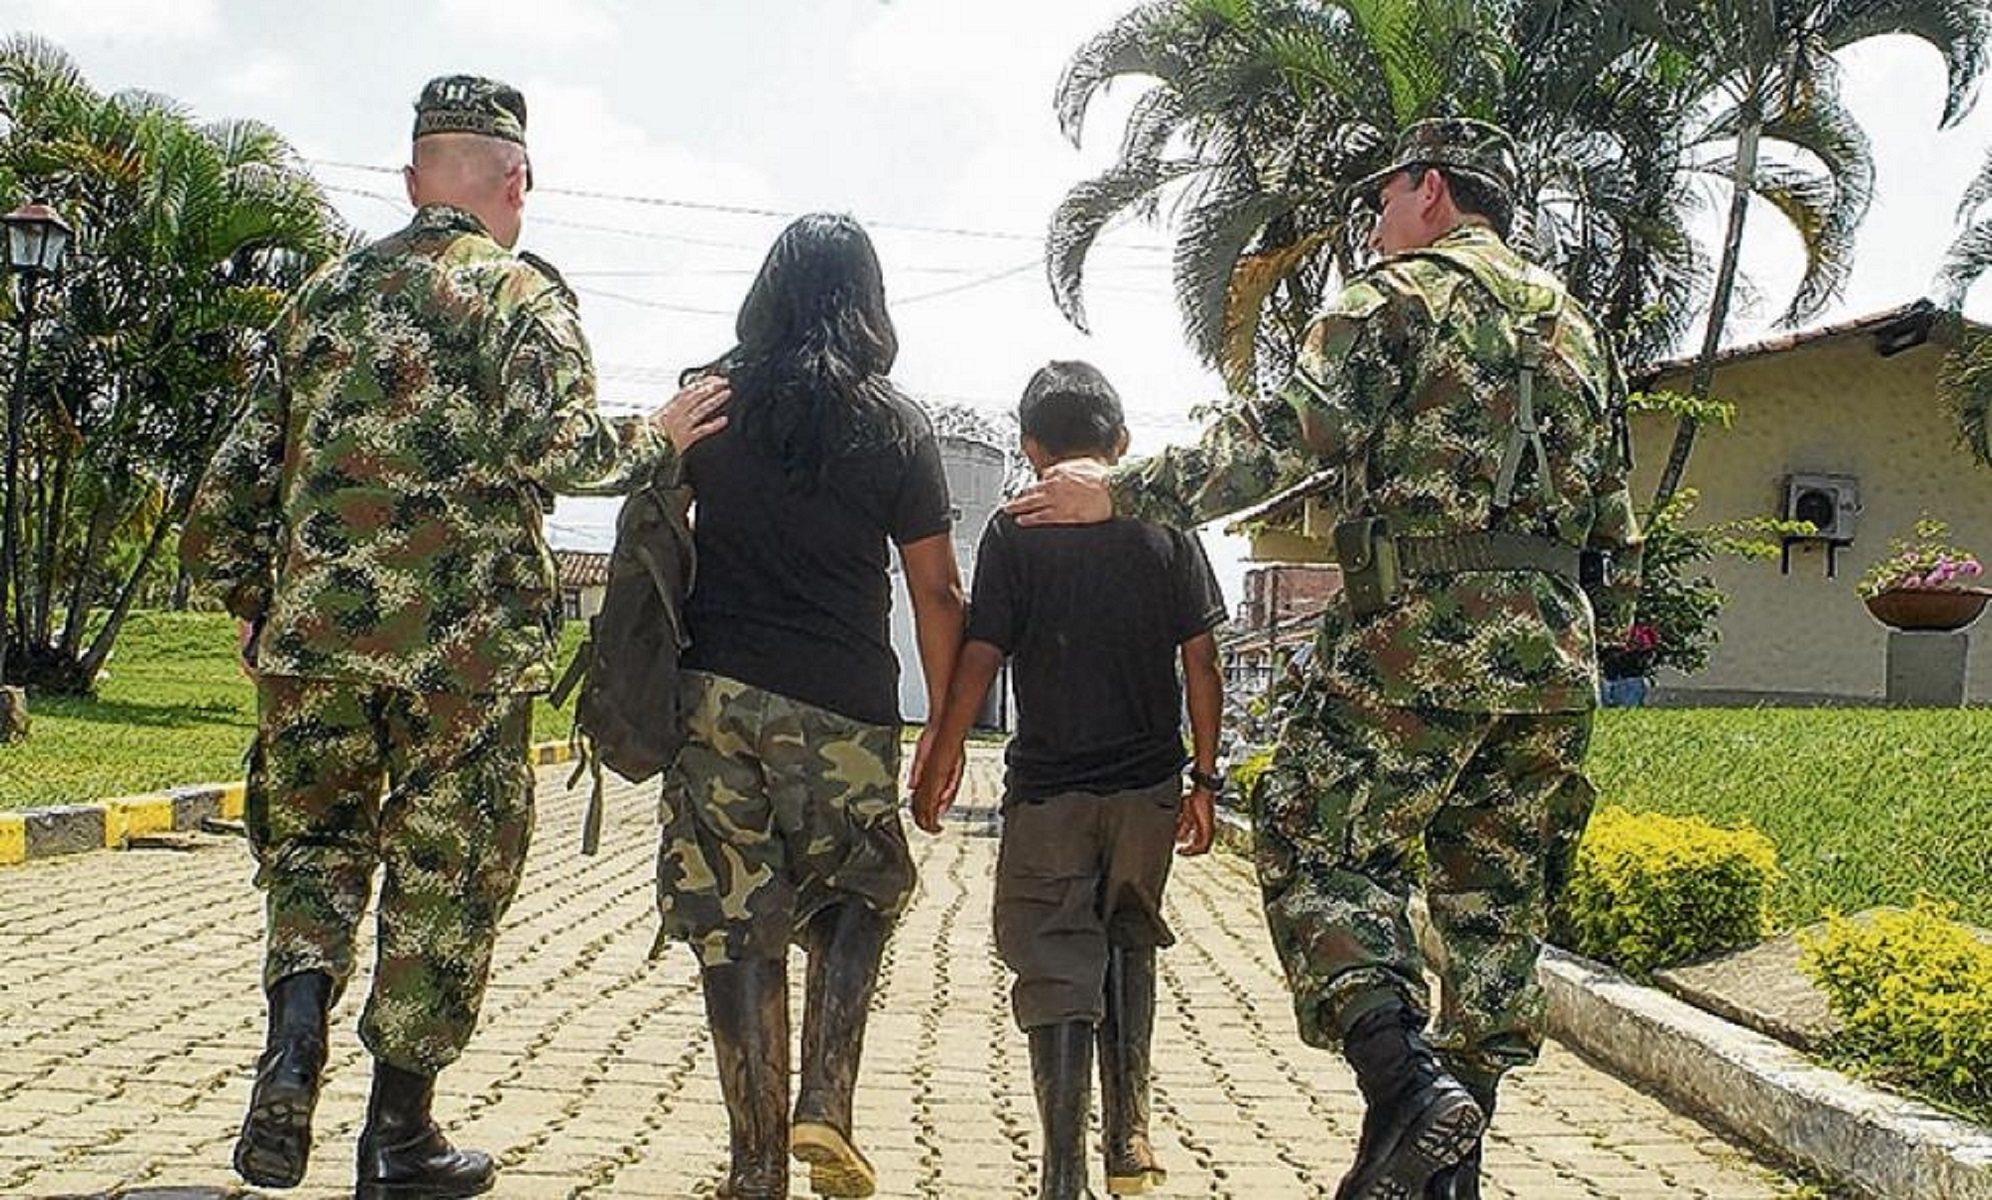 Colombian Army Rescues Minors from Armed Conflict